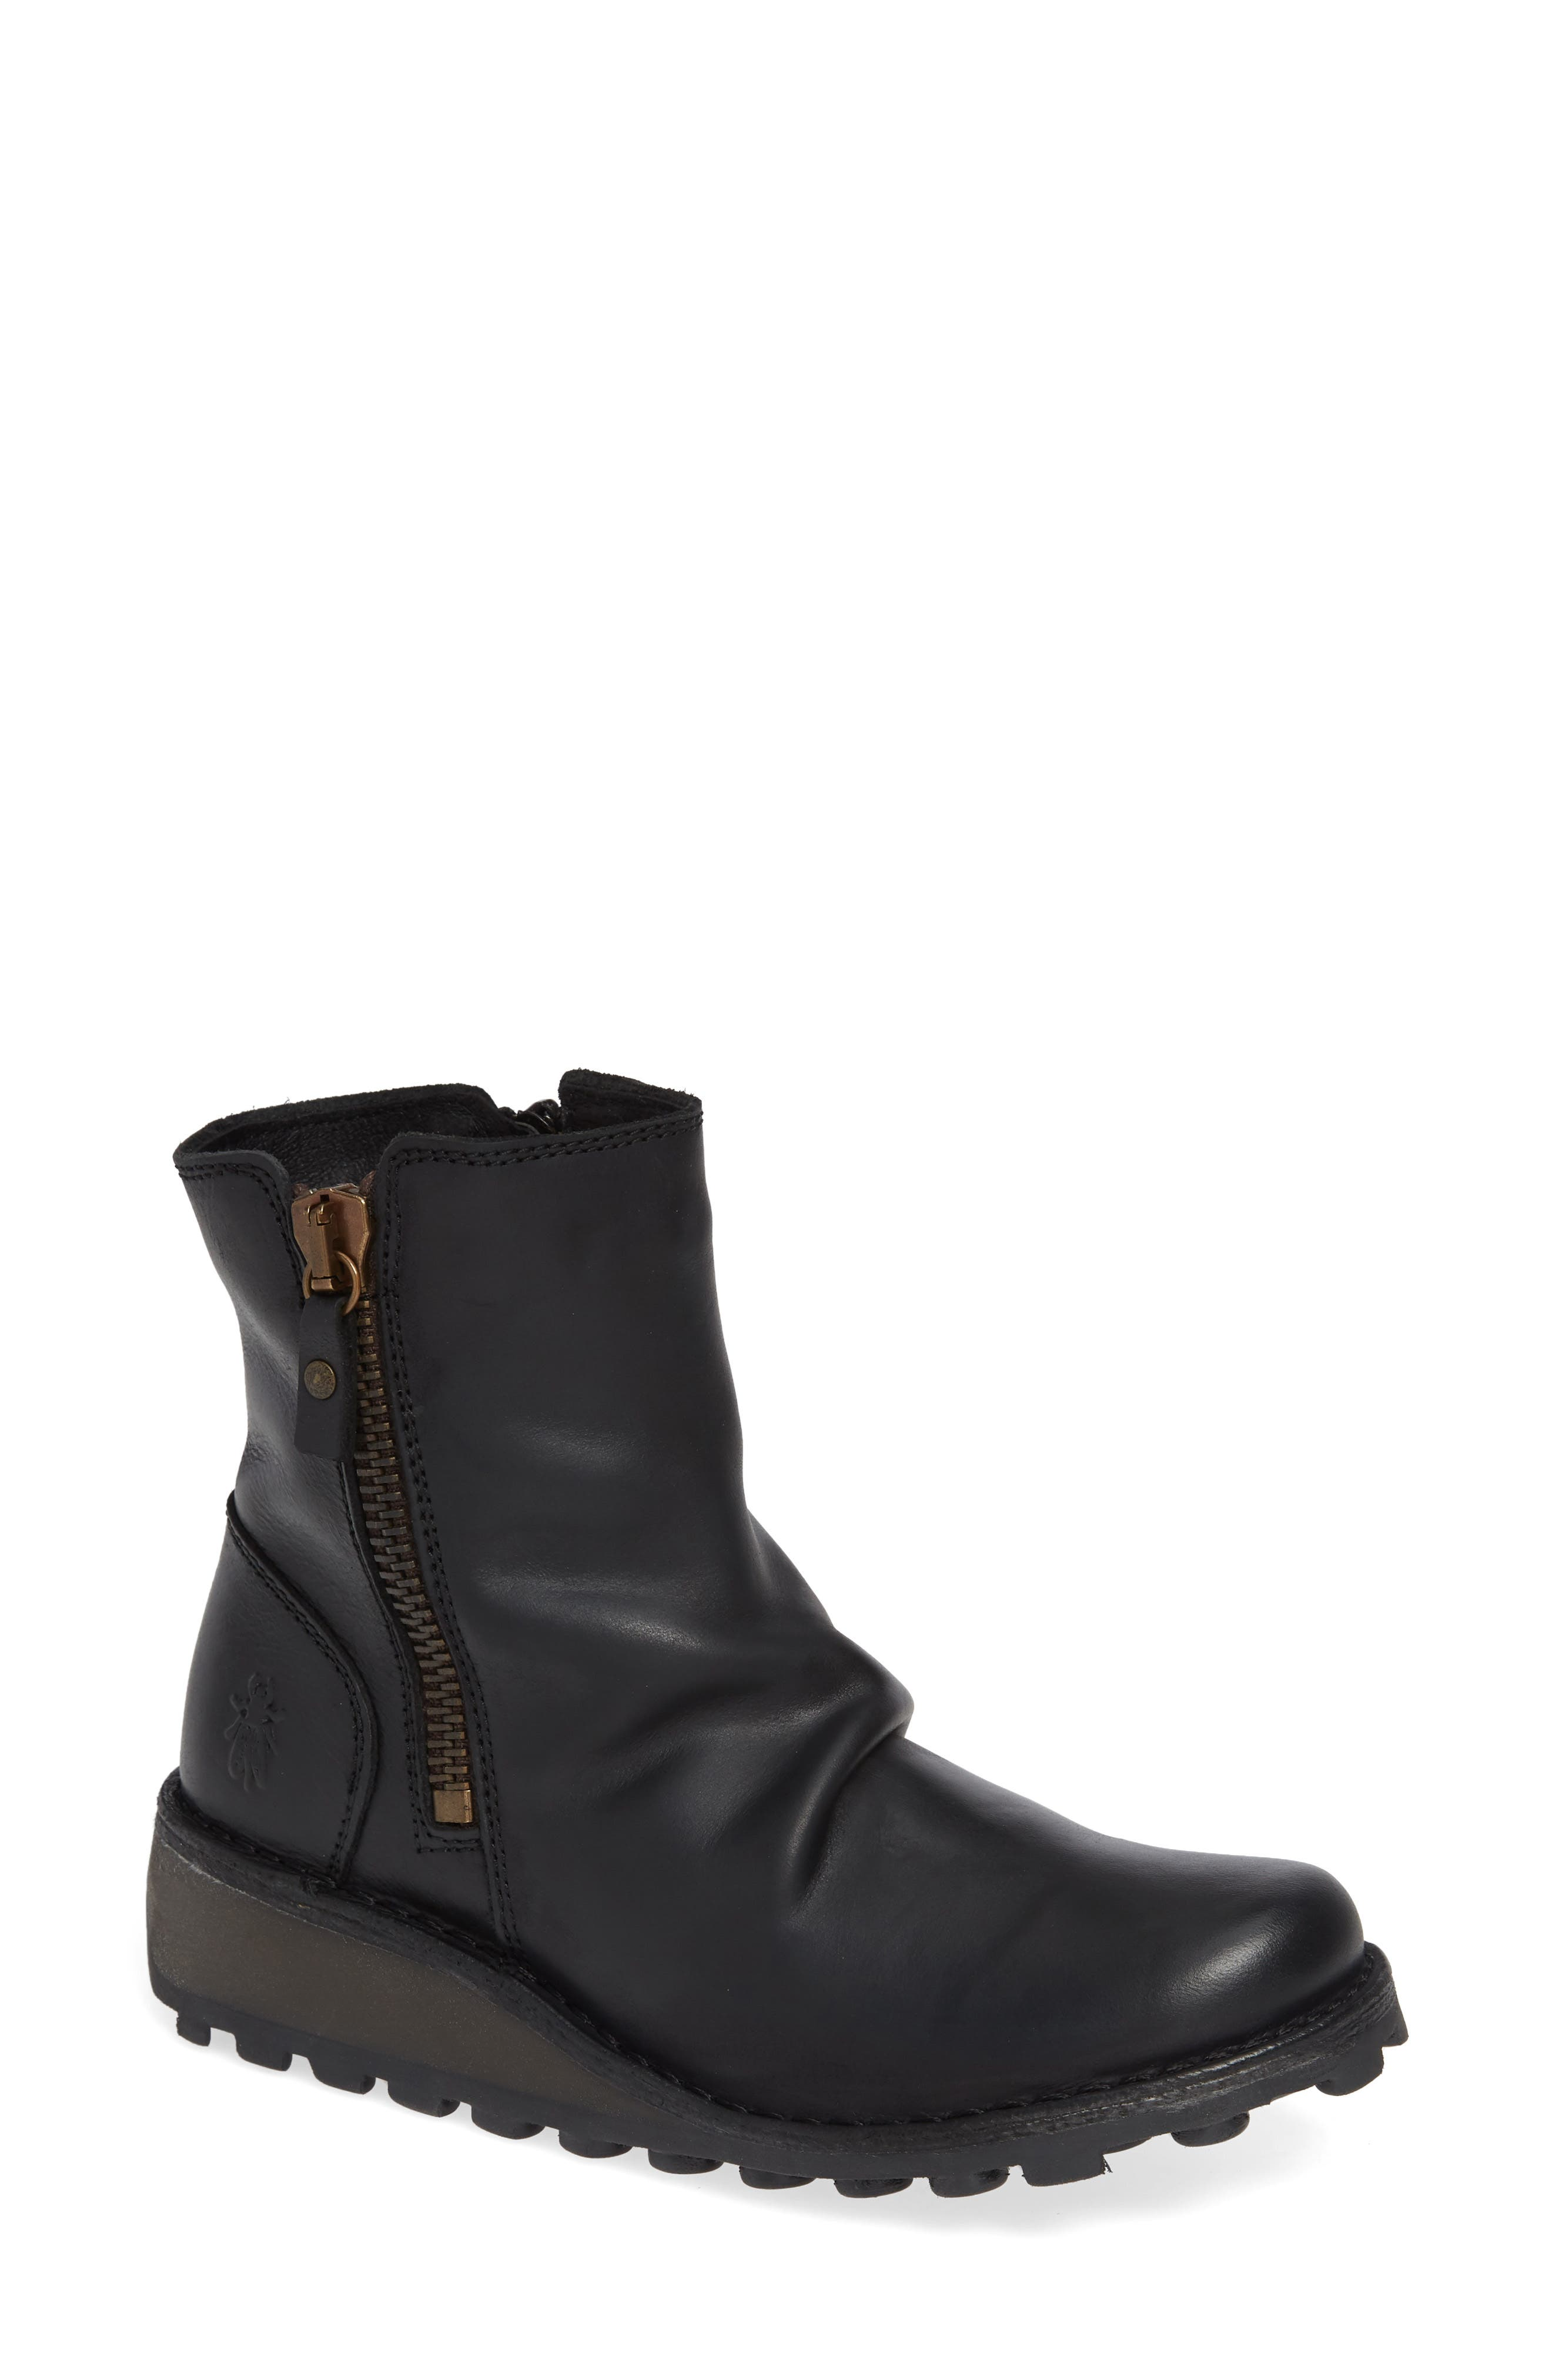 Fly London Mong Boot, Black